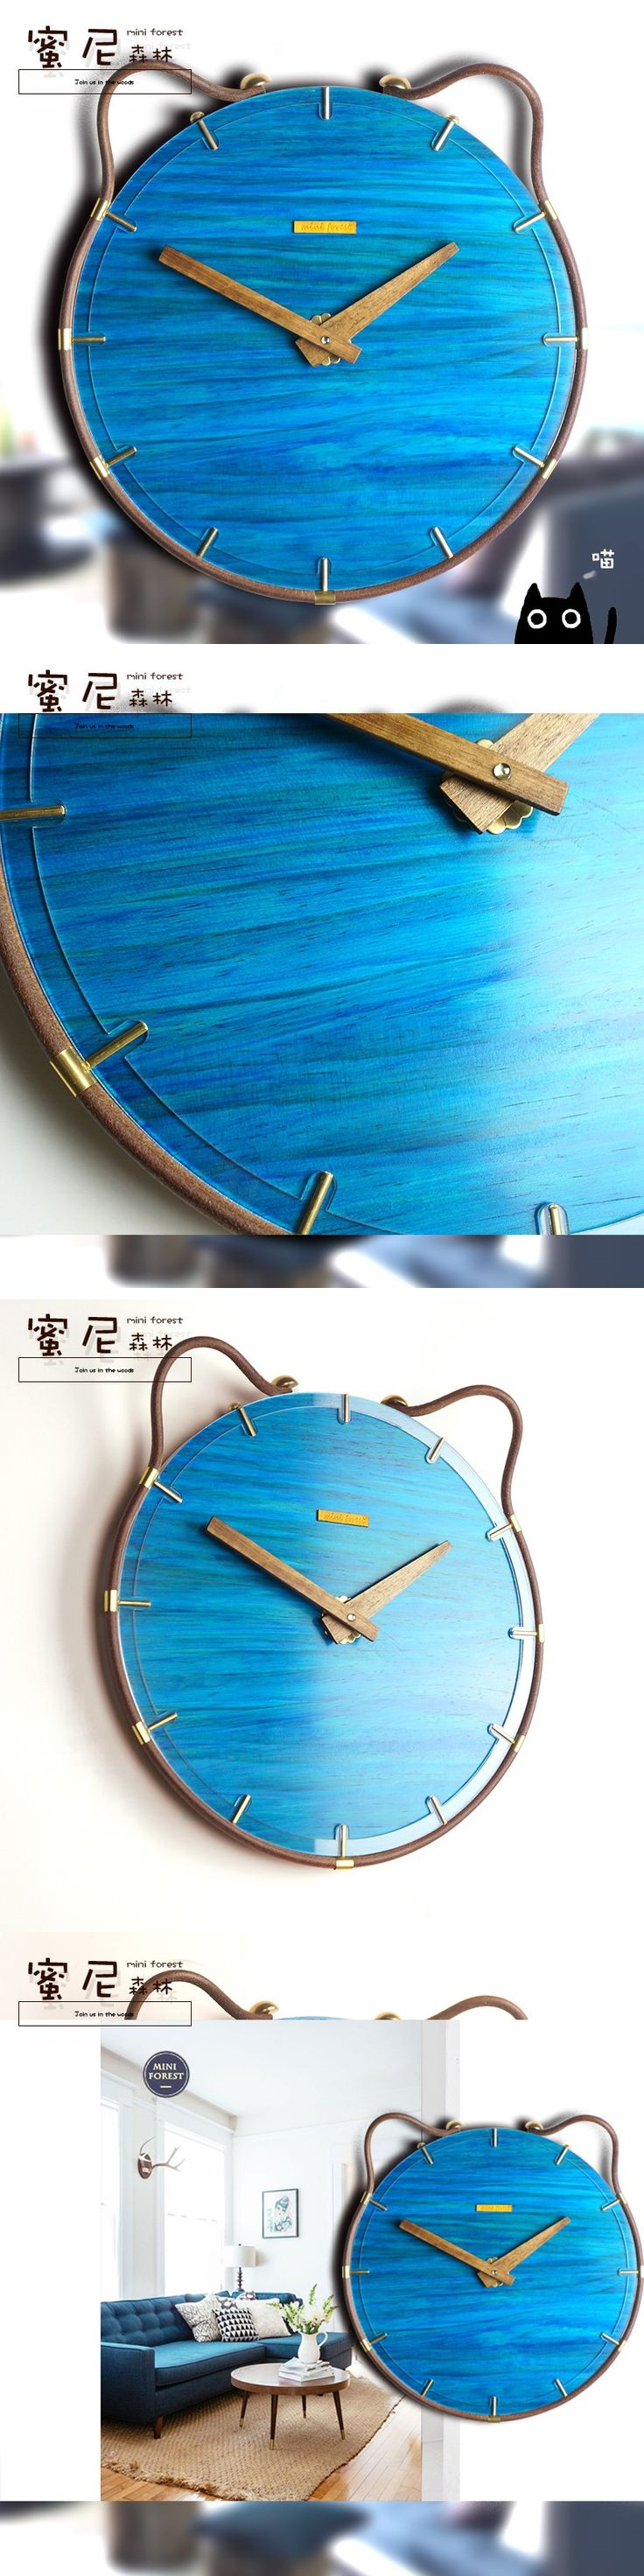 Mediterranean style Cat wood clocks Living Room Art Shepherd Personalized Creative Mute Clock rustic clock home decor 12 inch $59.3